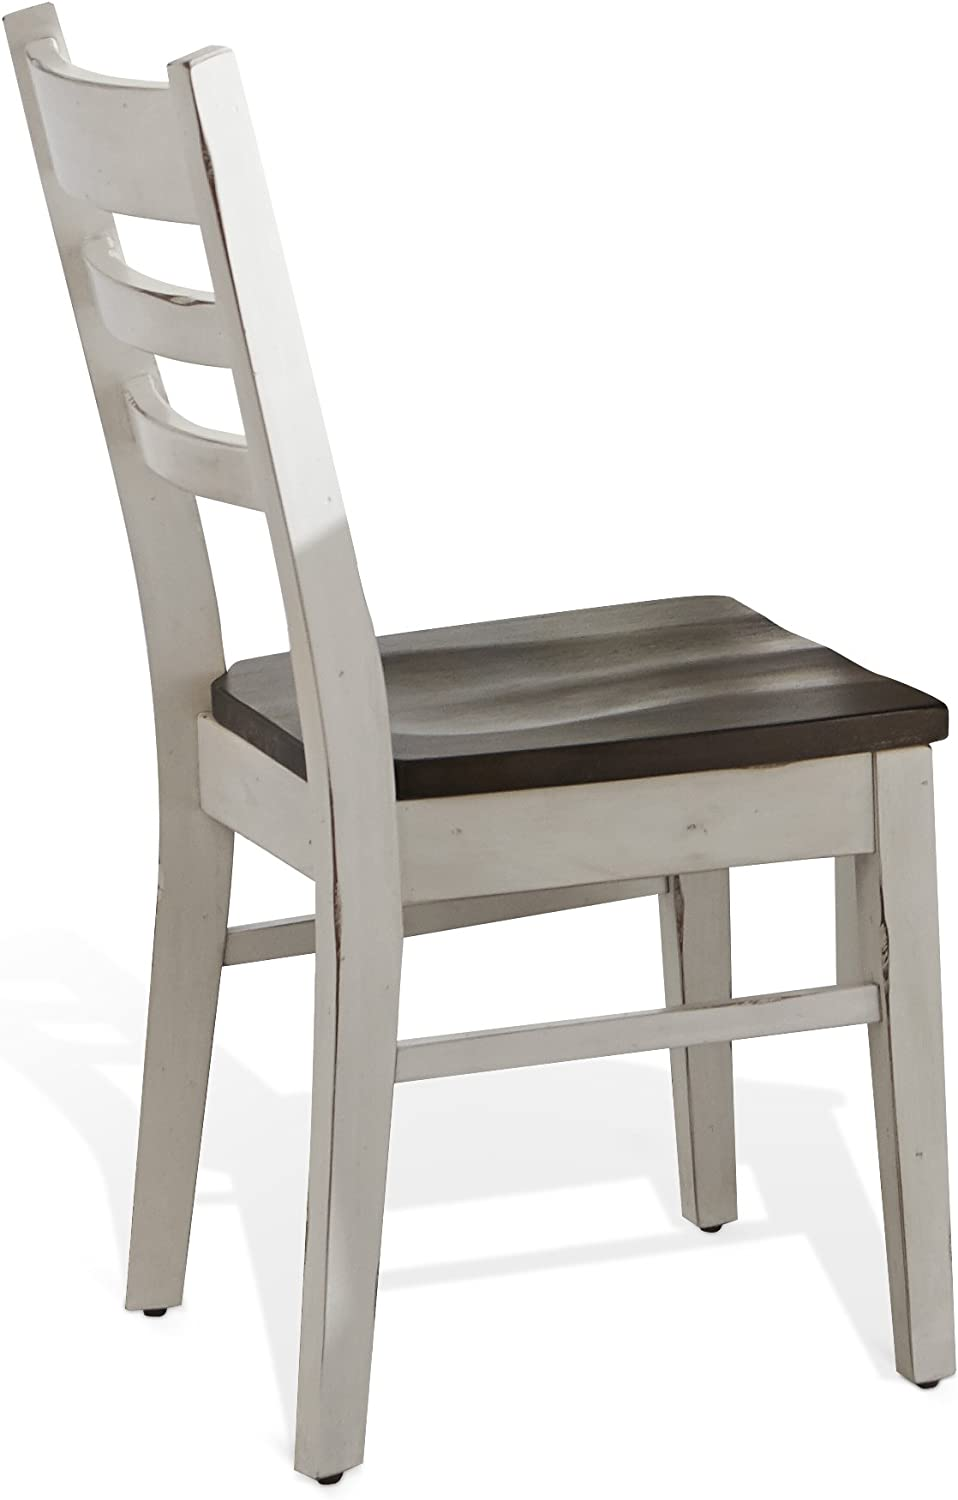 Sunny Designs Carriage House Dining Chair in European Cottage Finish 1616EC